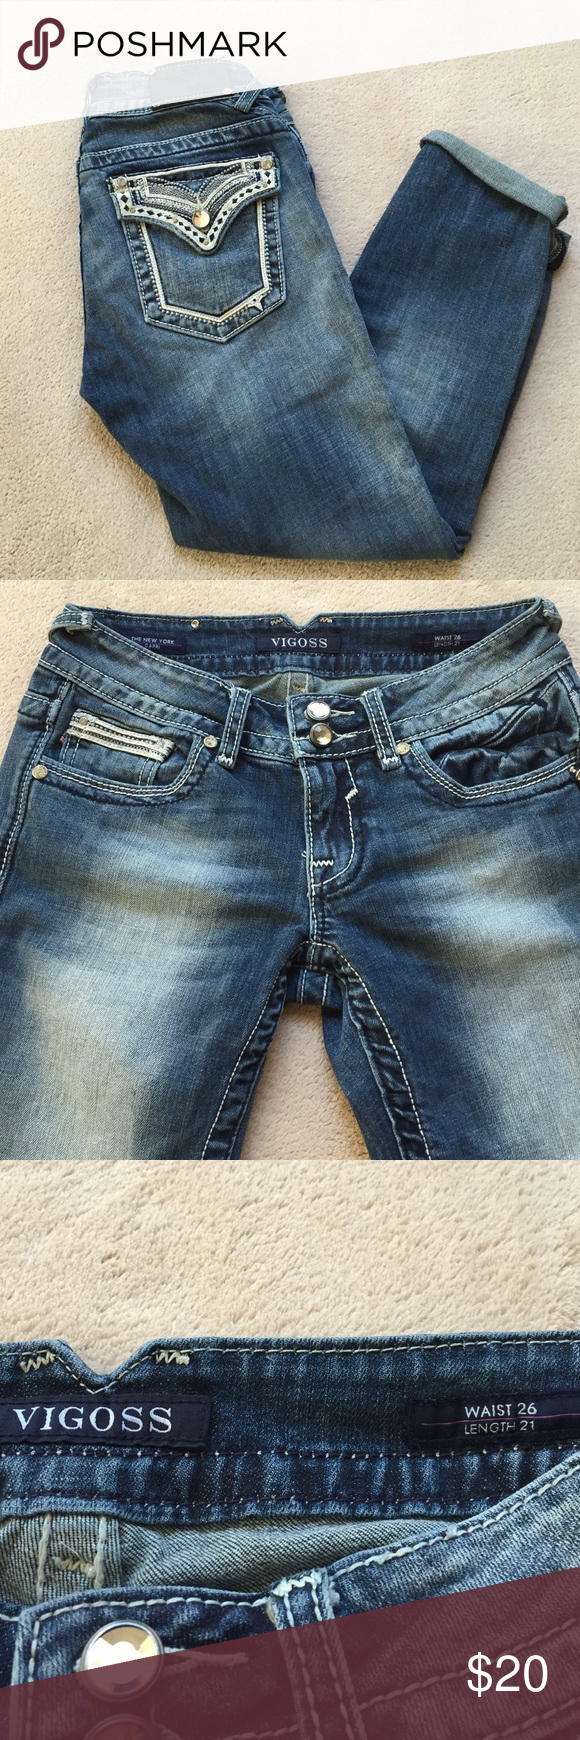 """Vigoss Capri Jeans Very cute Vigoss capris with detailing on the back pockets and light wash on the front legs. Waist measurement 26"""", length 21"""". In good used condition. Embellishment jewel on bottom of right side (second picture) pocket slightly loose. Smoke and pet free home. Vigoss Jeans Ankle & Cropped"""